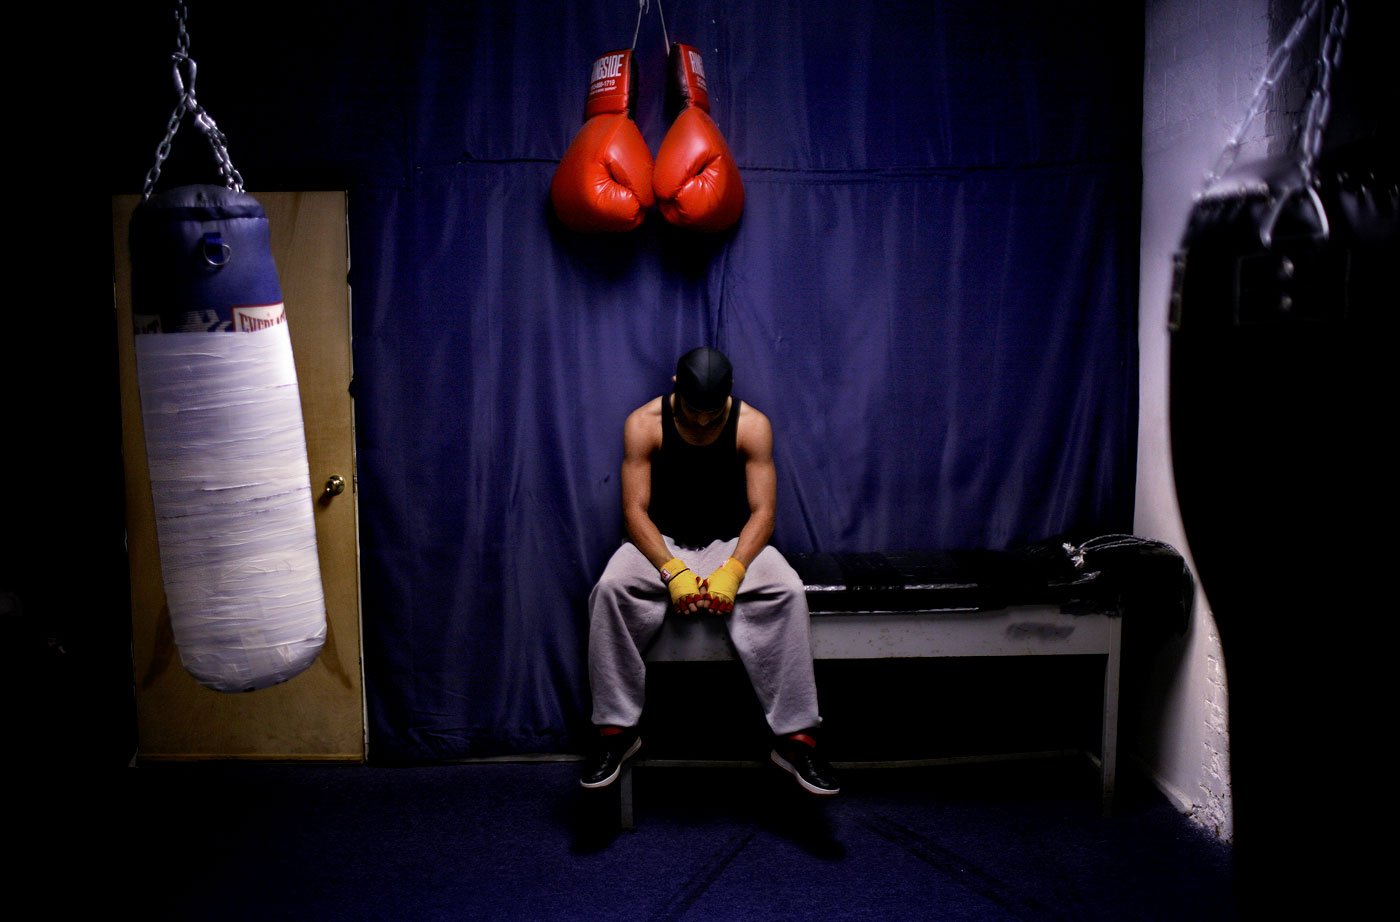 Victor Maldonado, 19, rests while working out at the San Juan Center Sports in Hartford.  Maldonado is from Hartford and works out in the afternoon, when the center has a program for area youth. The center provides an alternative for youth other than hitting the streets in the afternoon. {quote}We're here for the community, if anyone needs help, we're here,{quote} said Andrea Montero, who is the assistant director for the center.